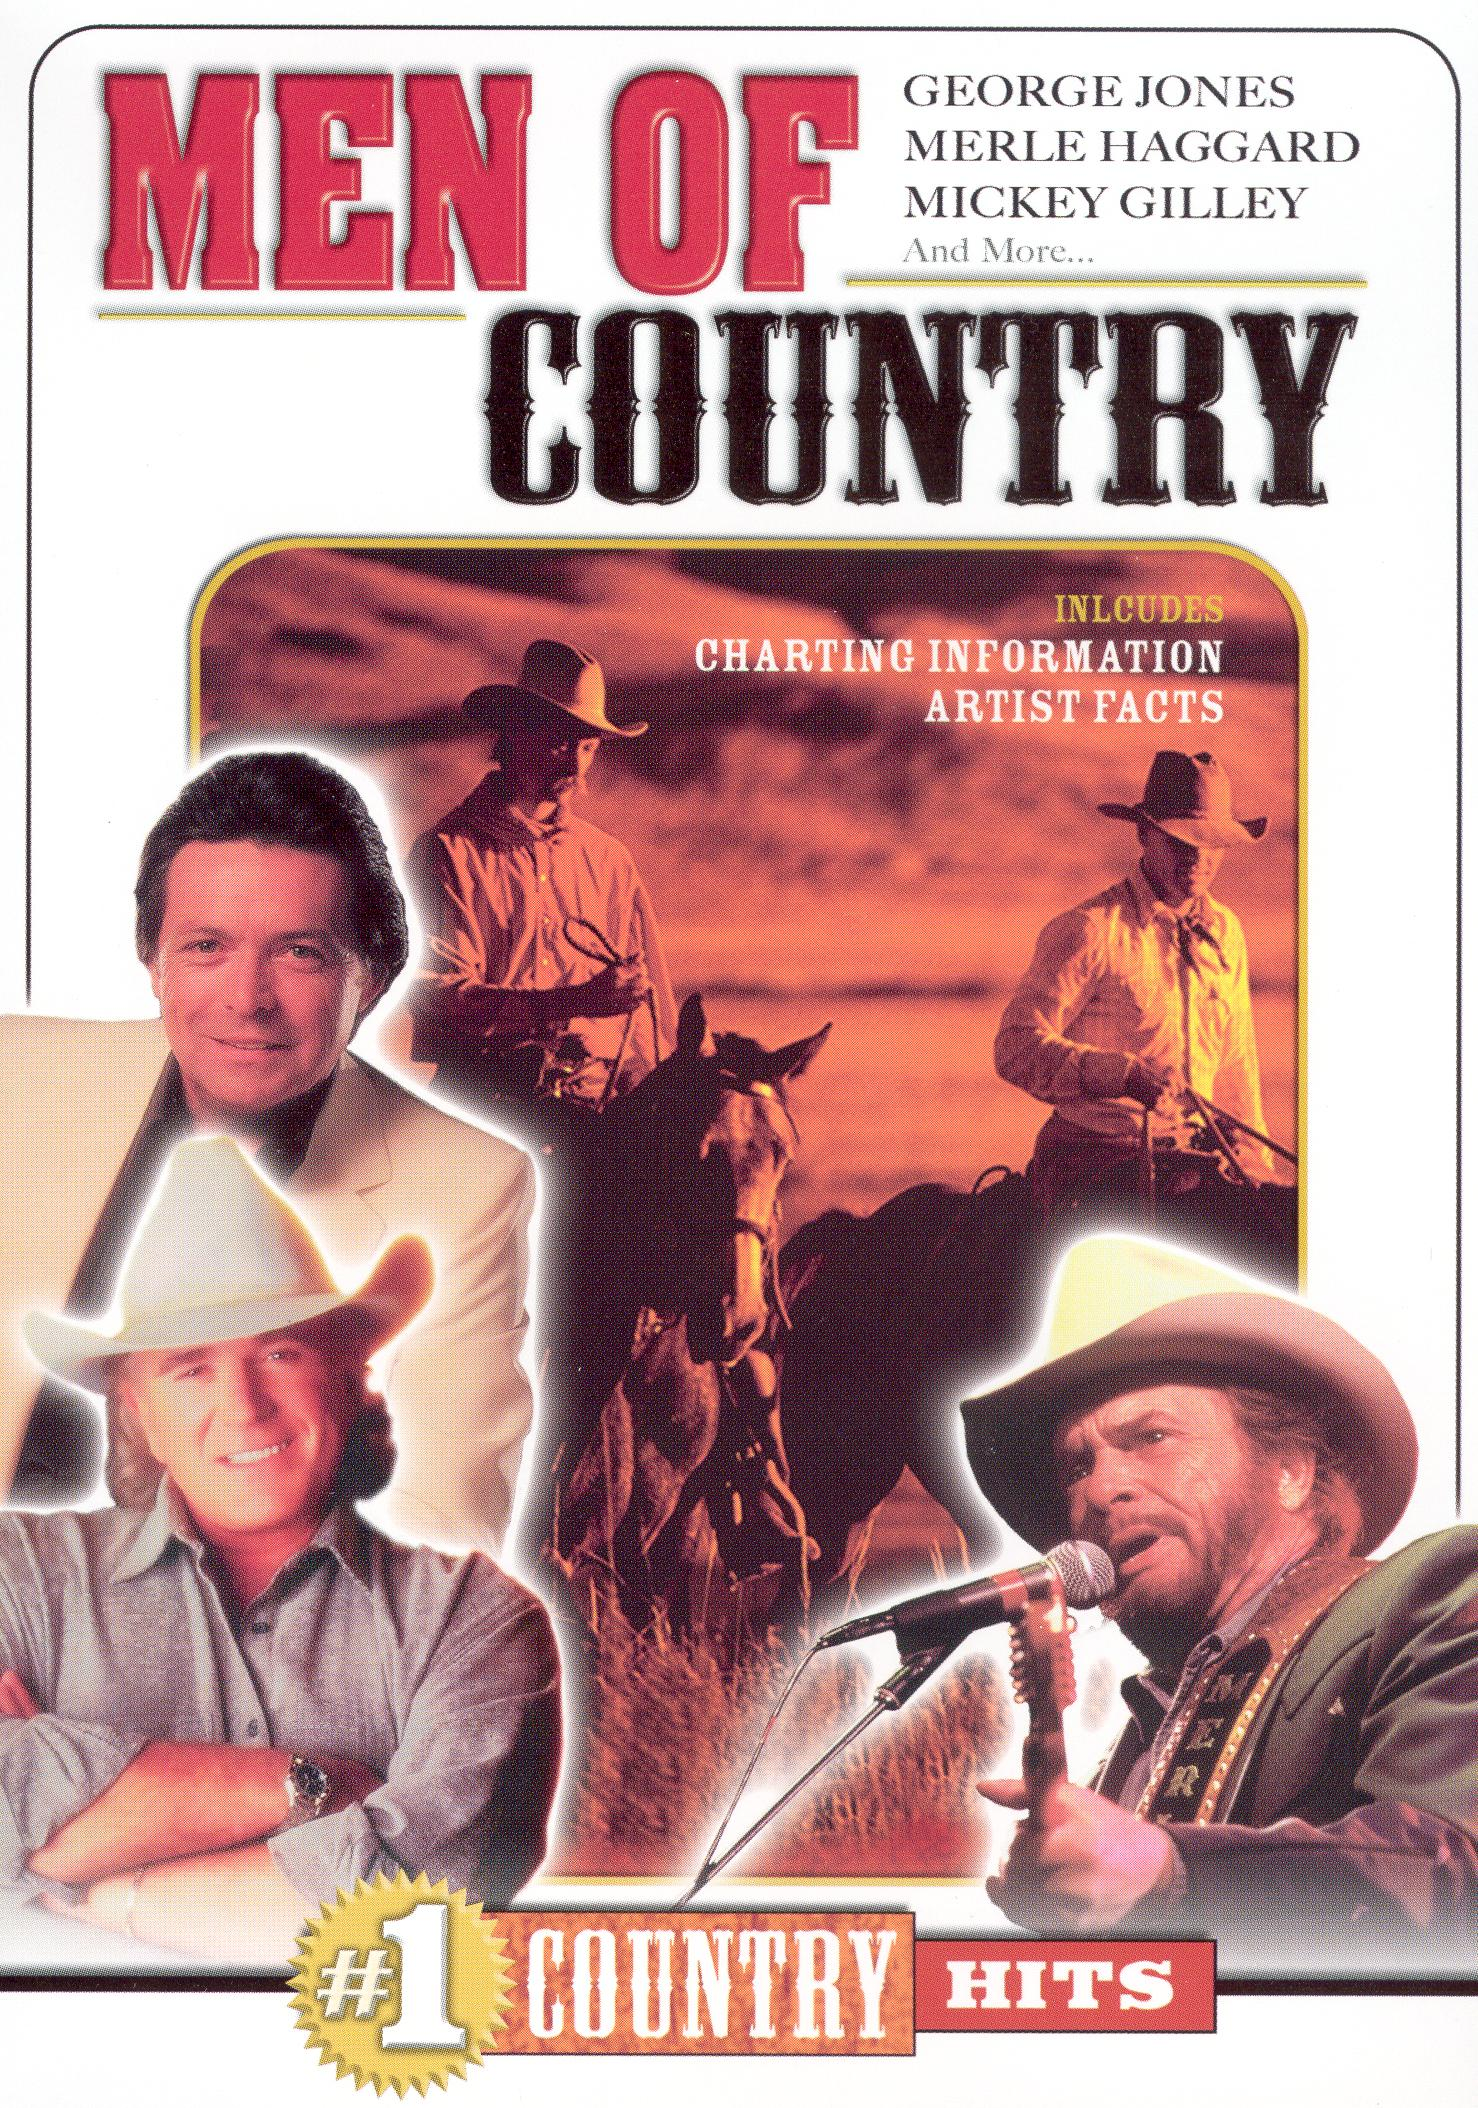 Country #1 Hits: Men of Country